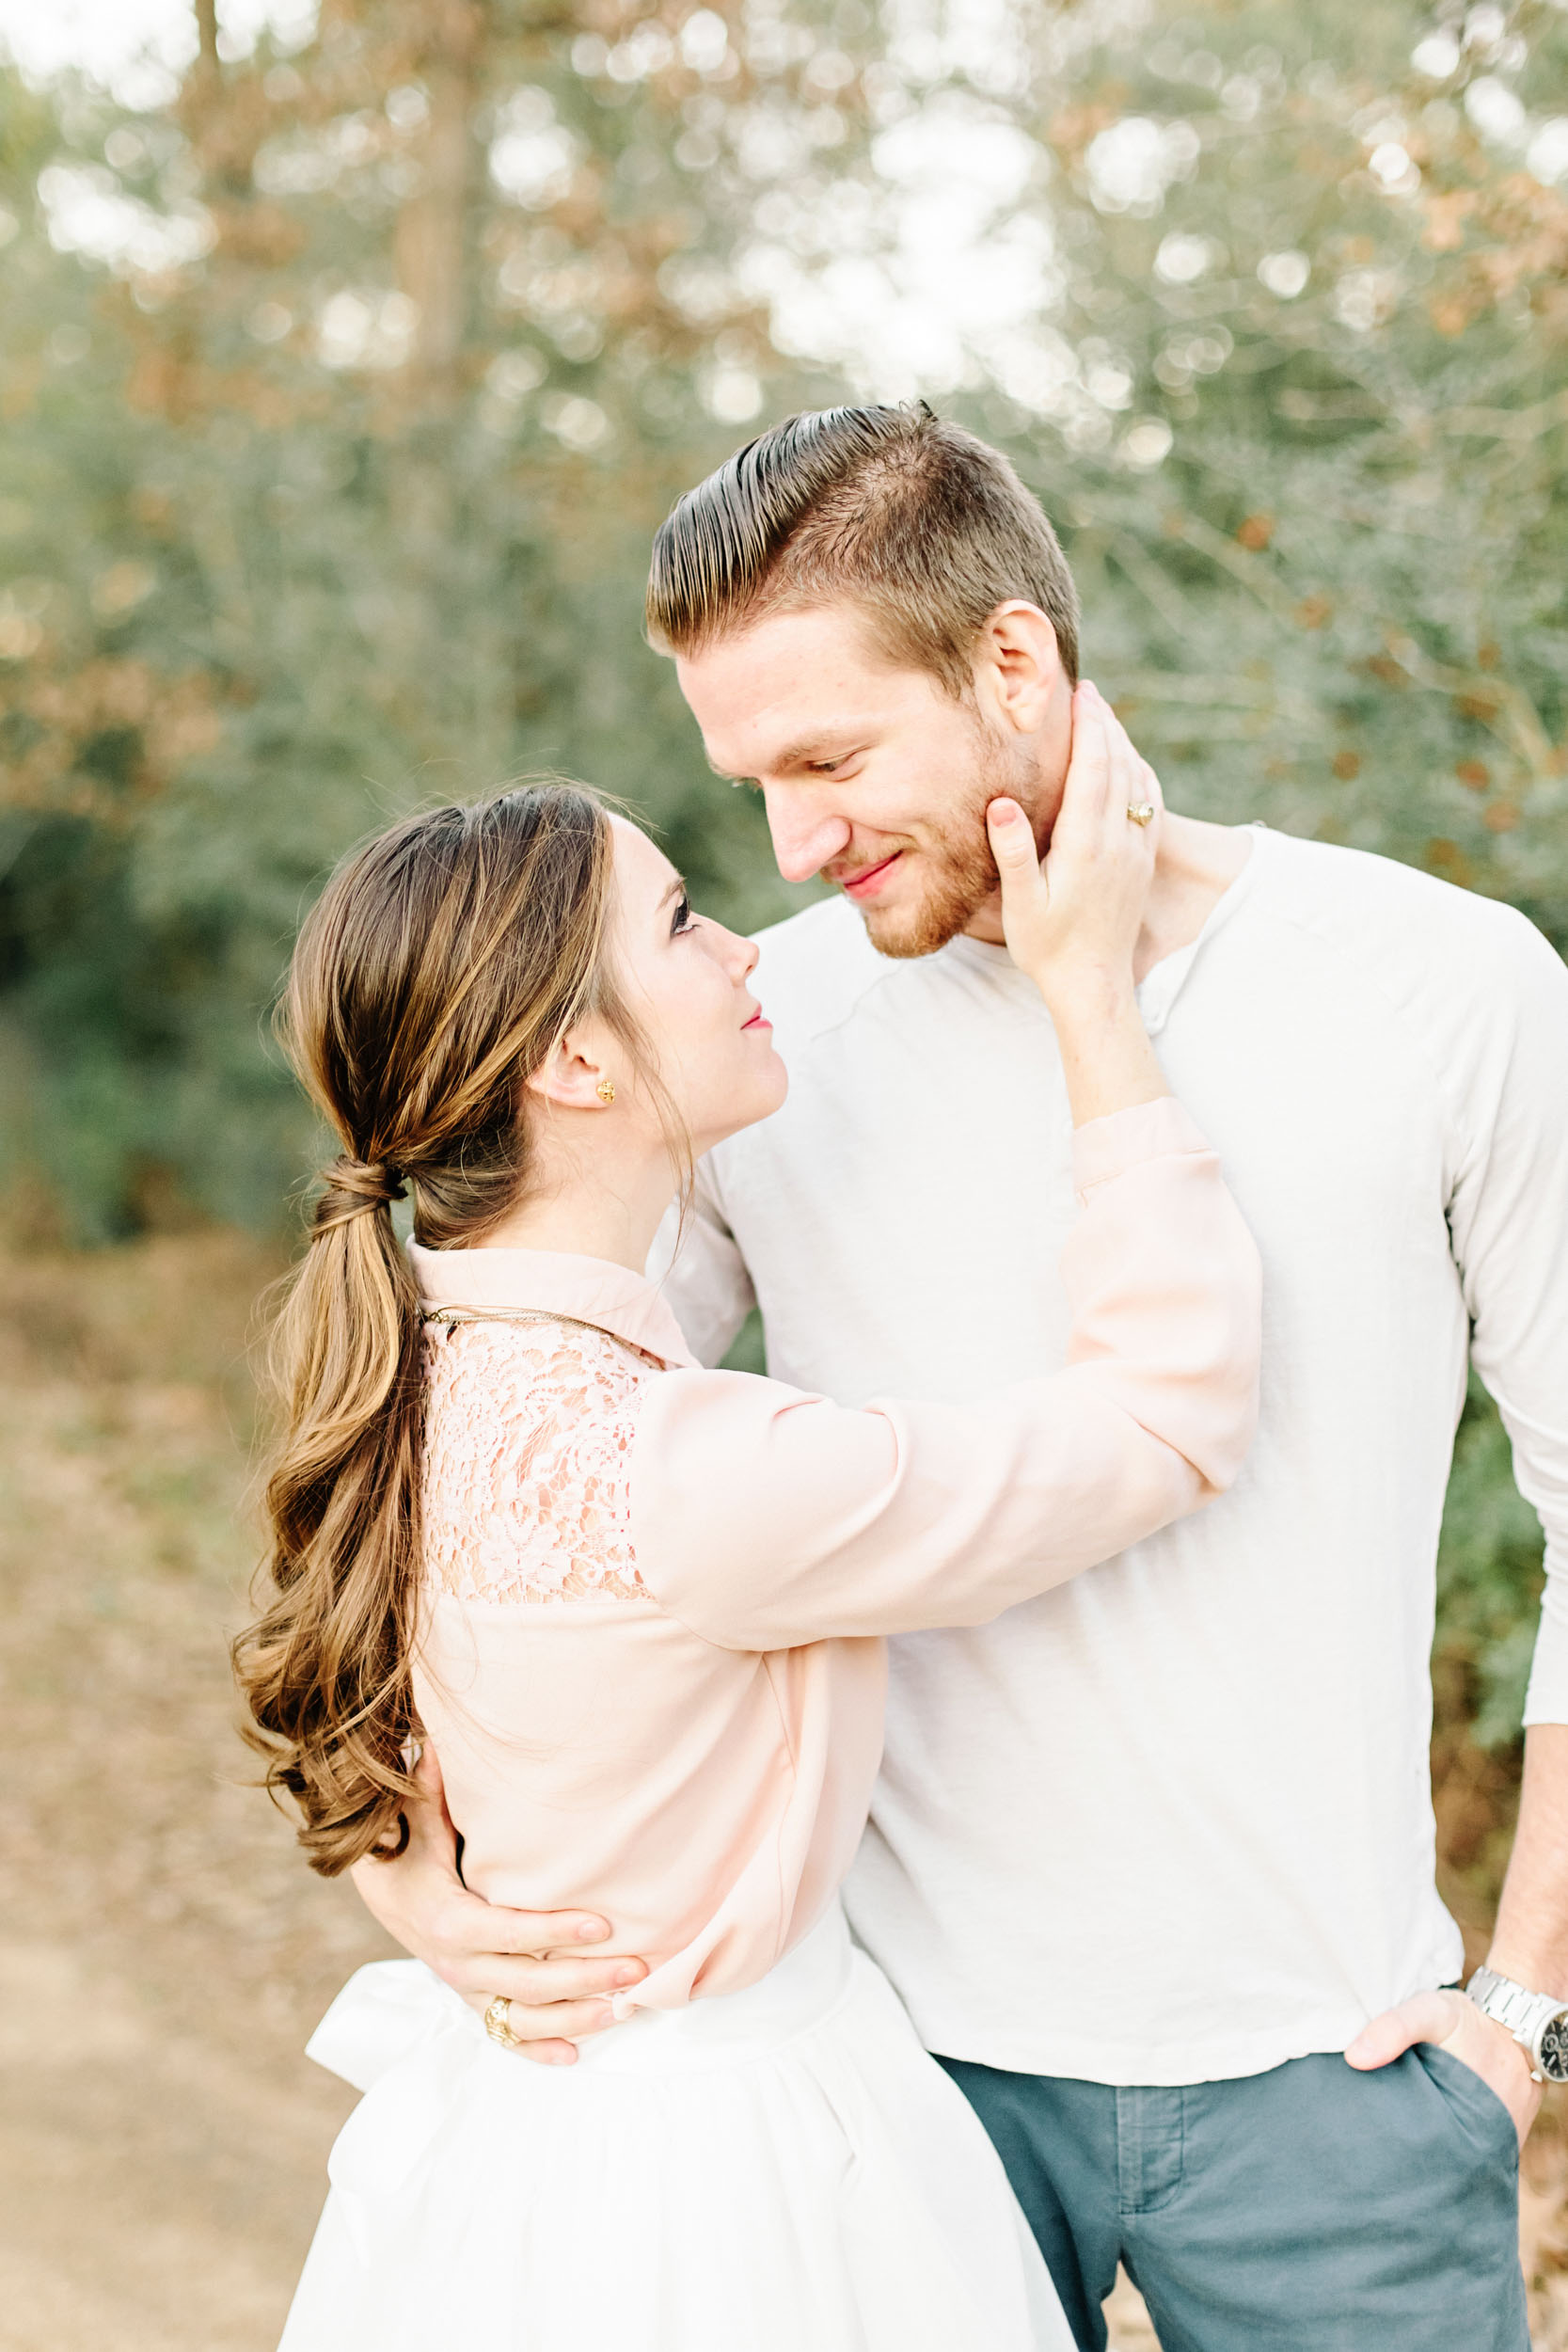 Cassie Schott Photography_Houston and Chicago Portrait Photographer_Engagement Sessions and Anniversary Sessions_4.jpg